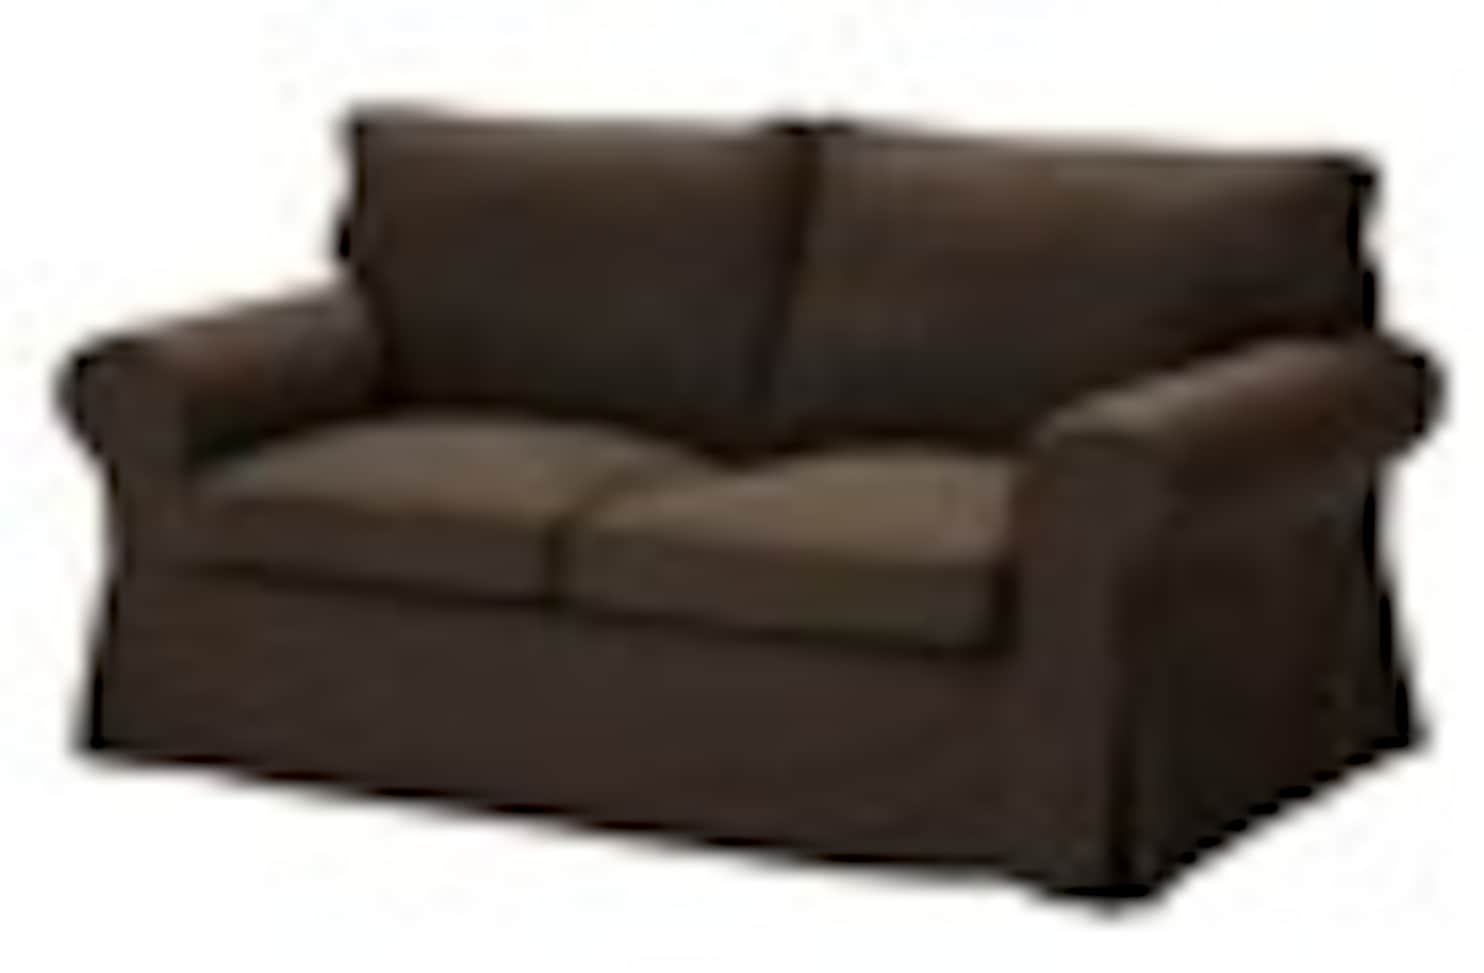 Sofa Upholstery Widnes Upholstery Cleaning Diy Or Pro The Washington Post